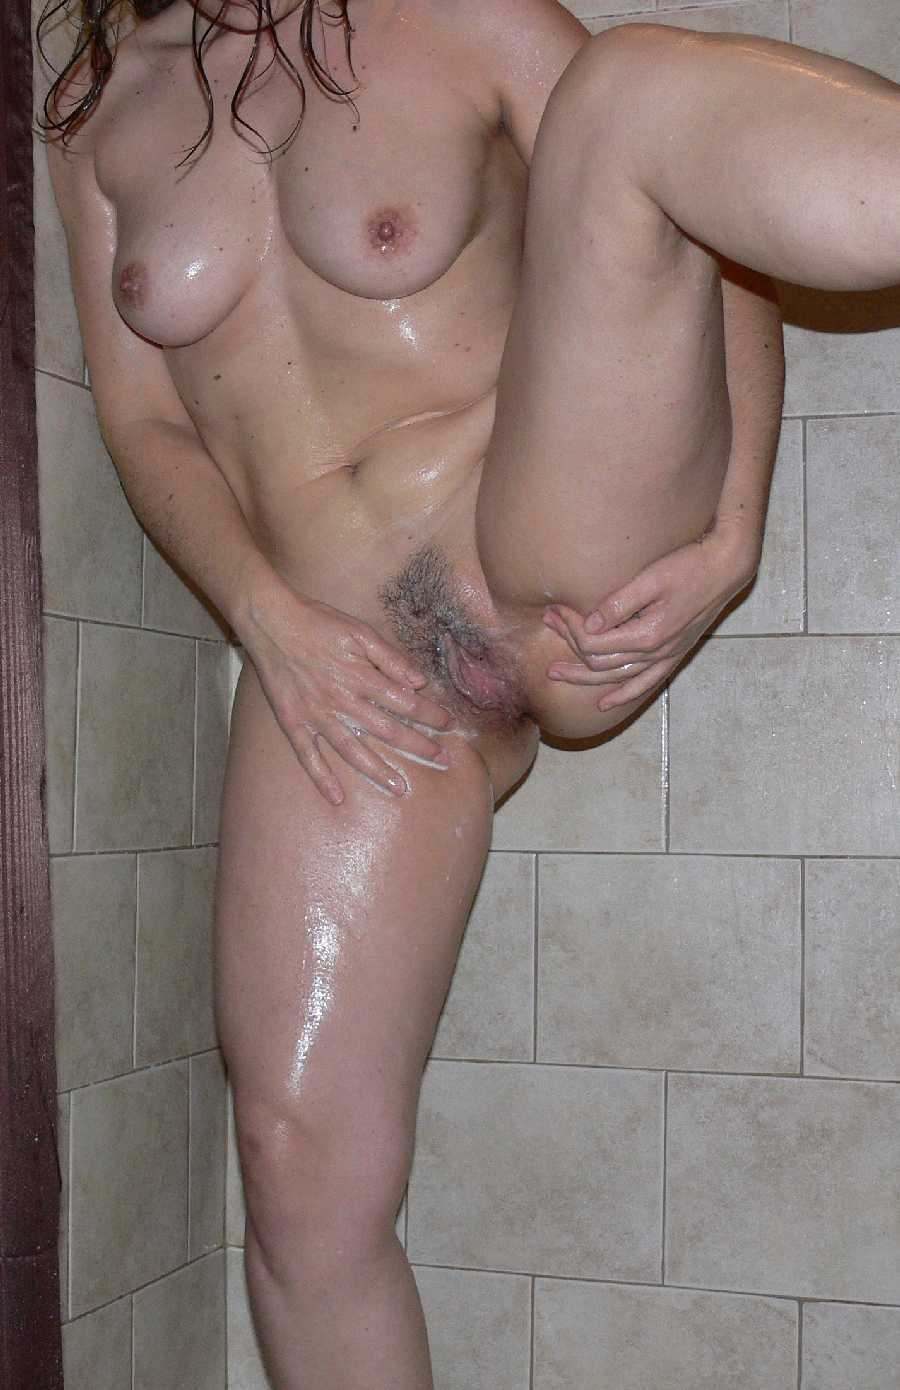 Muscular women spread over